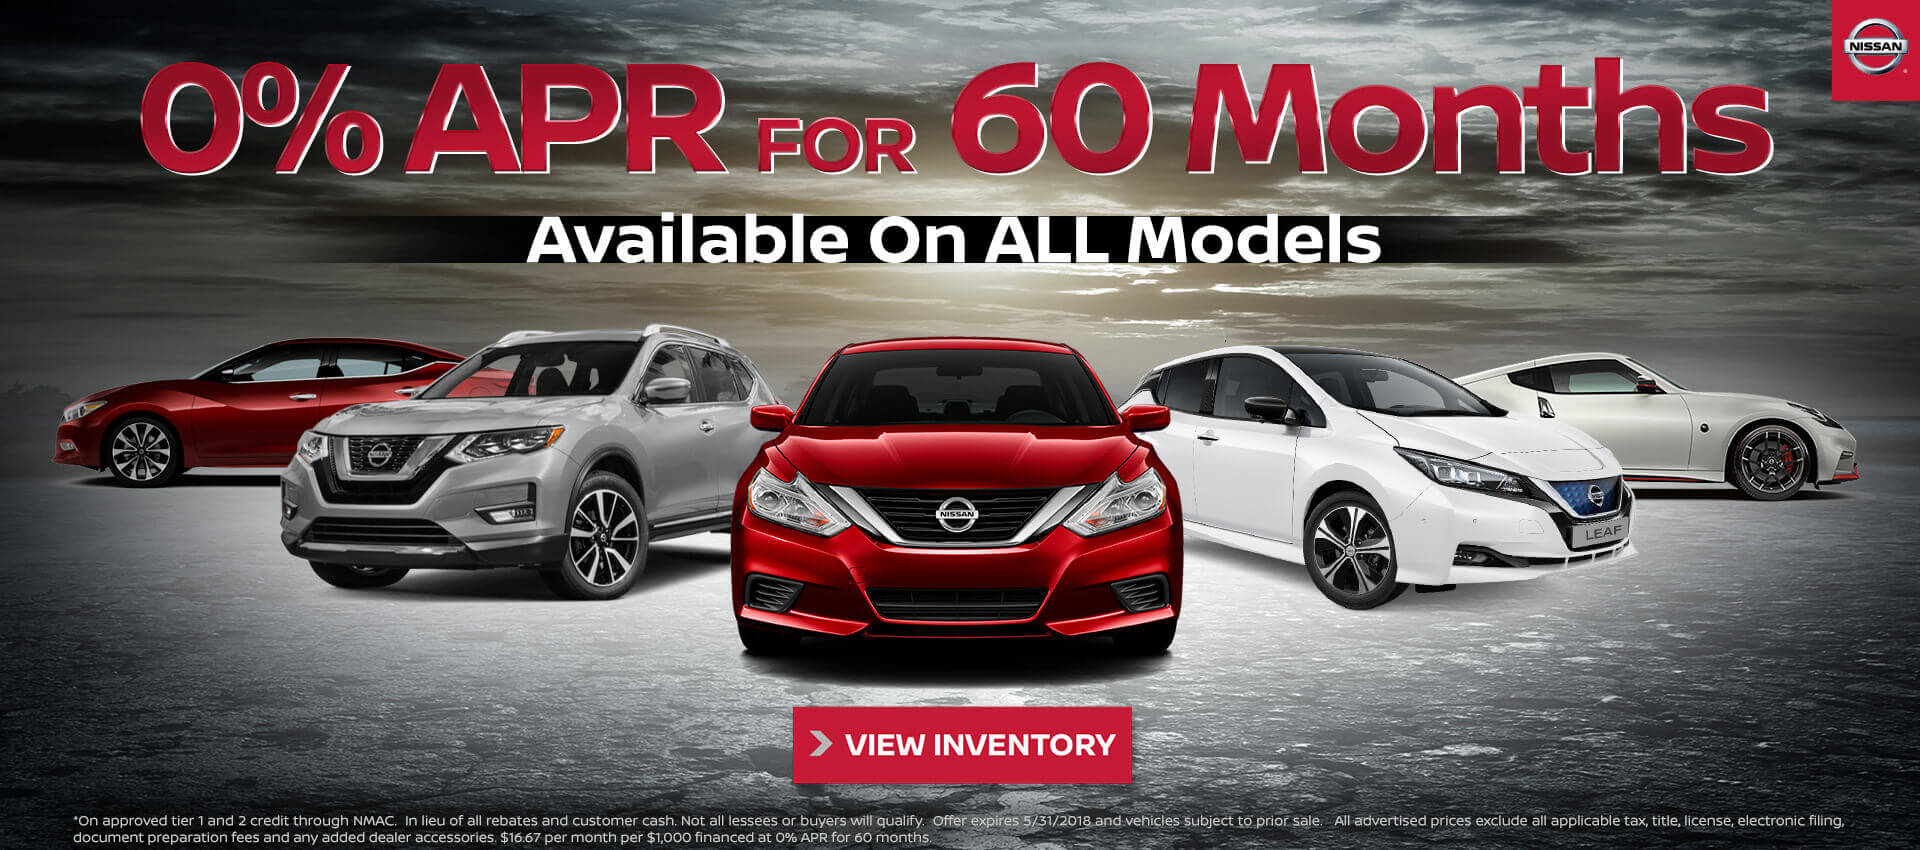 Nissan 0% APR for 60 months All Models